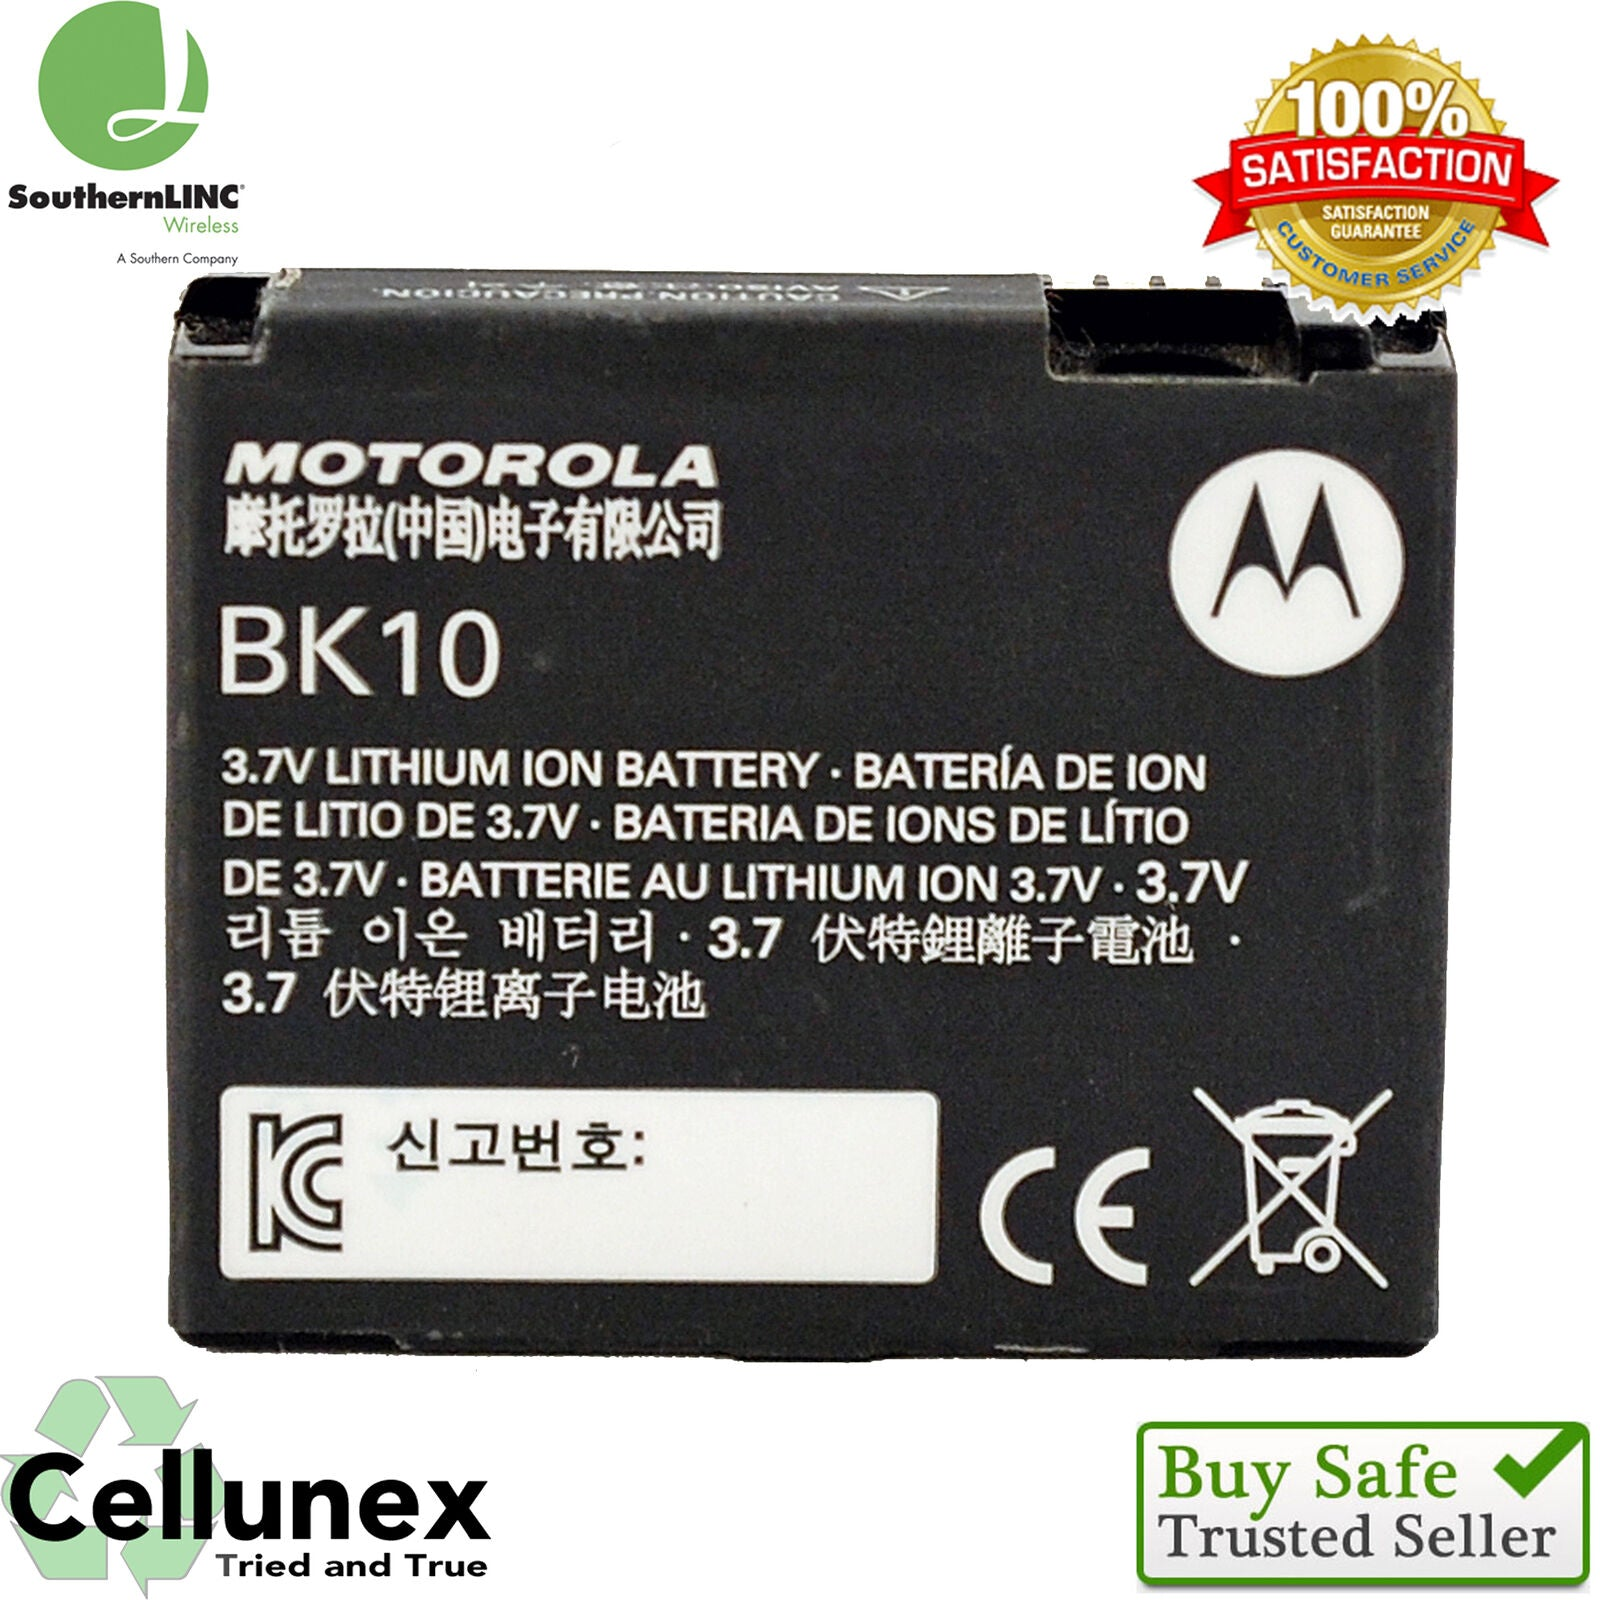 2x Motorola BK10 Battery for i680/i686 Replacement